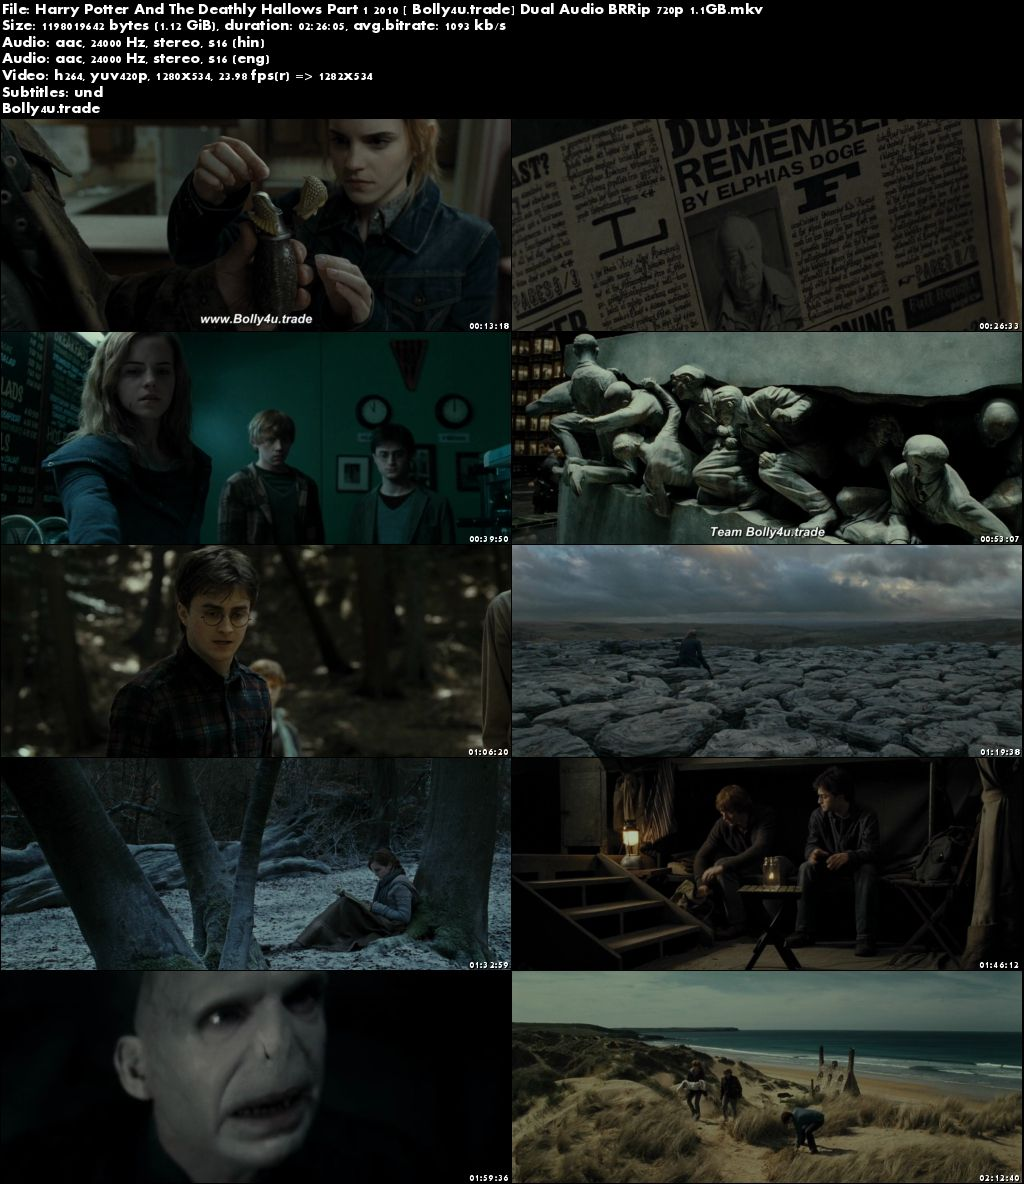 Harry Potter And The Deathly Hallows Part 1 2010 BRRip 450MB Hindi Dual Audio 480p Download